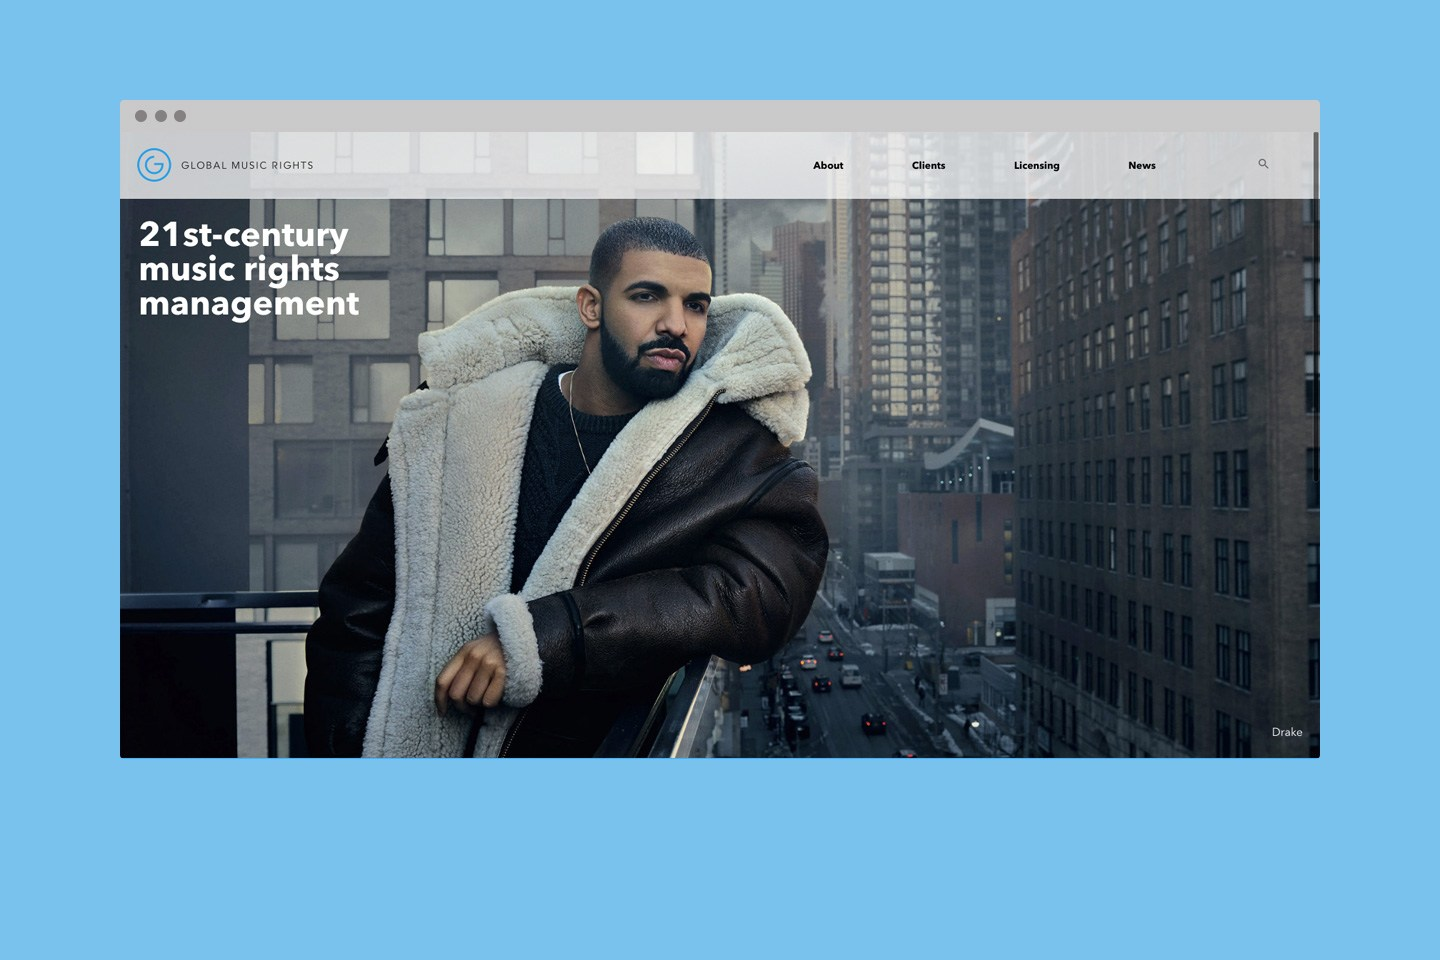 Global Music Rights - Web Redesign and Upgrade to Search 2.0